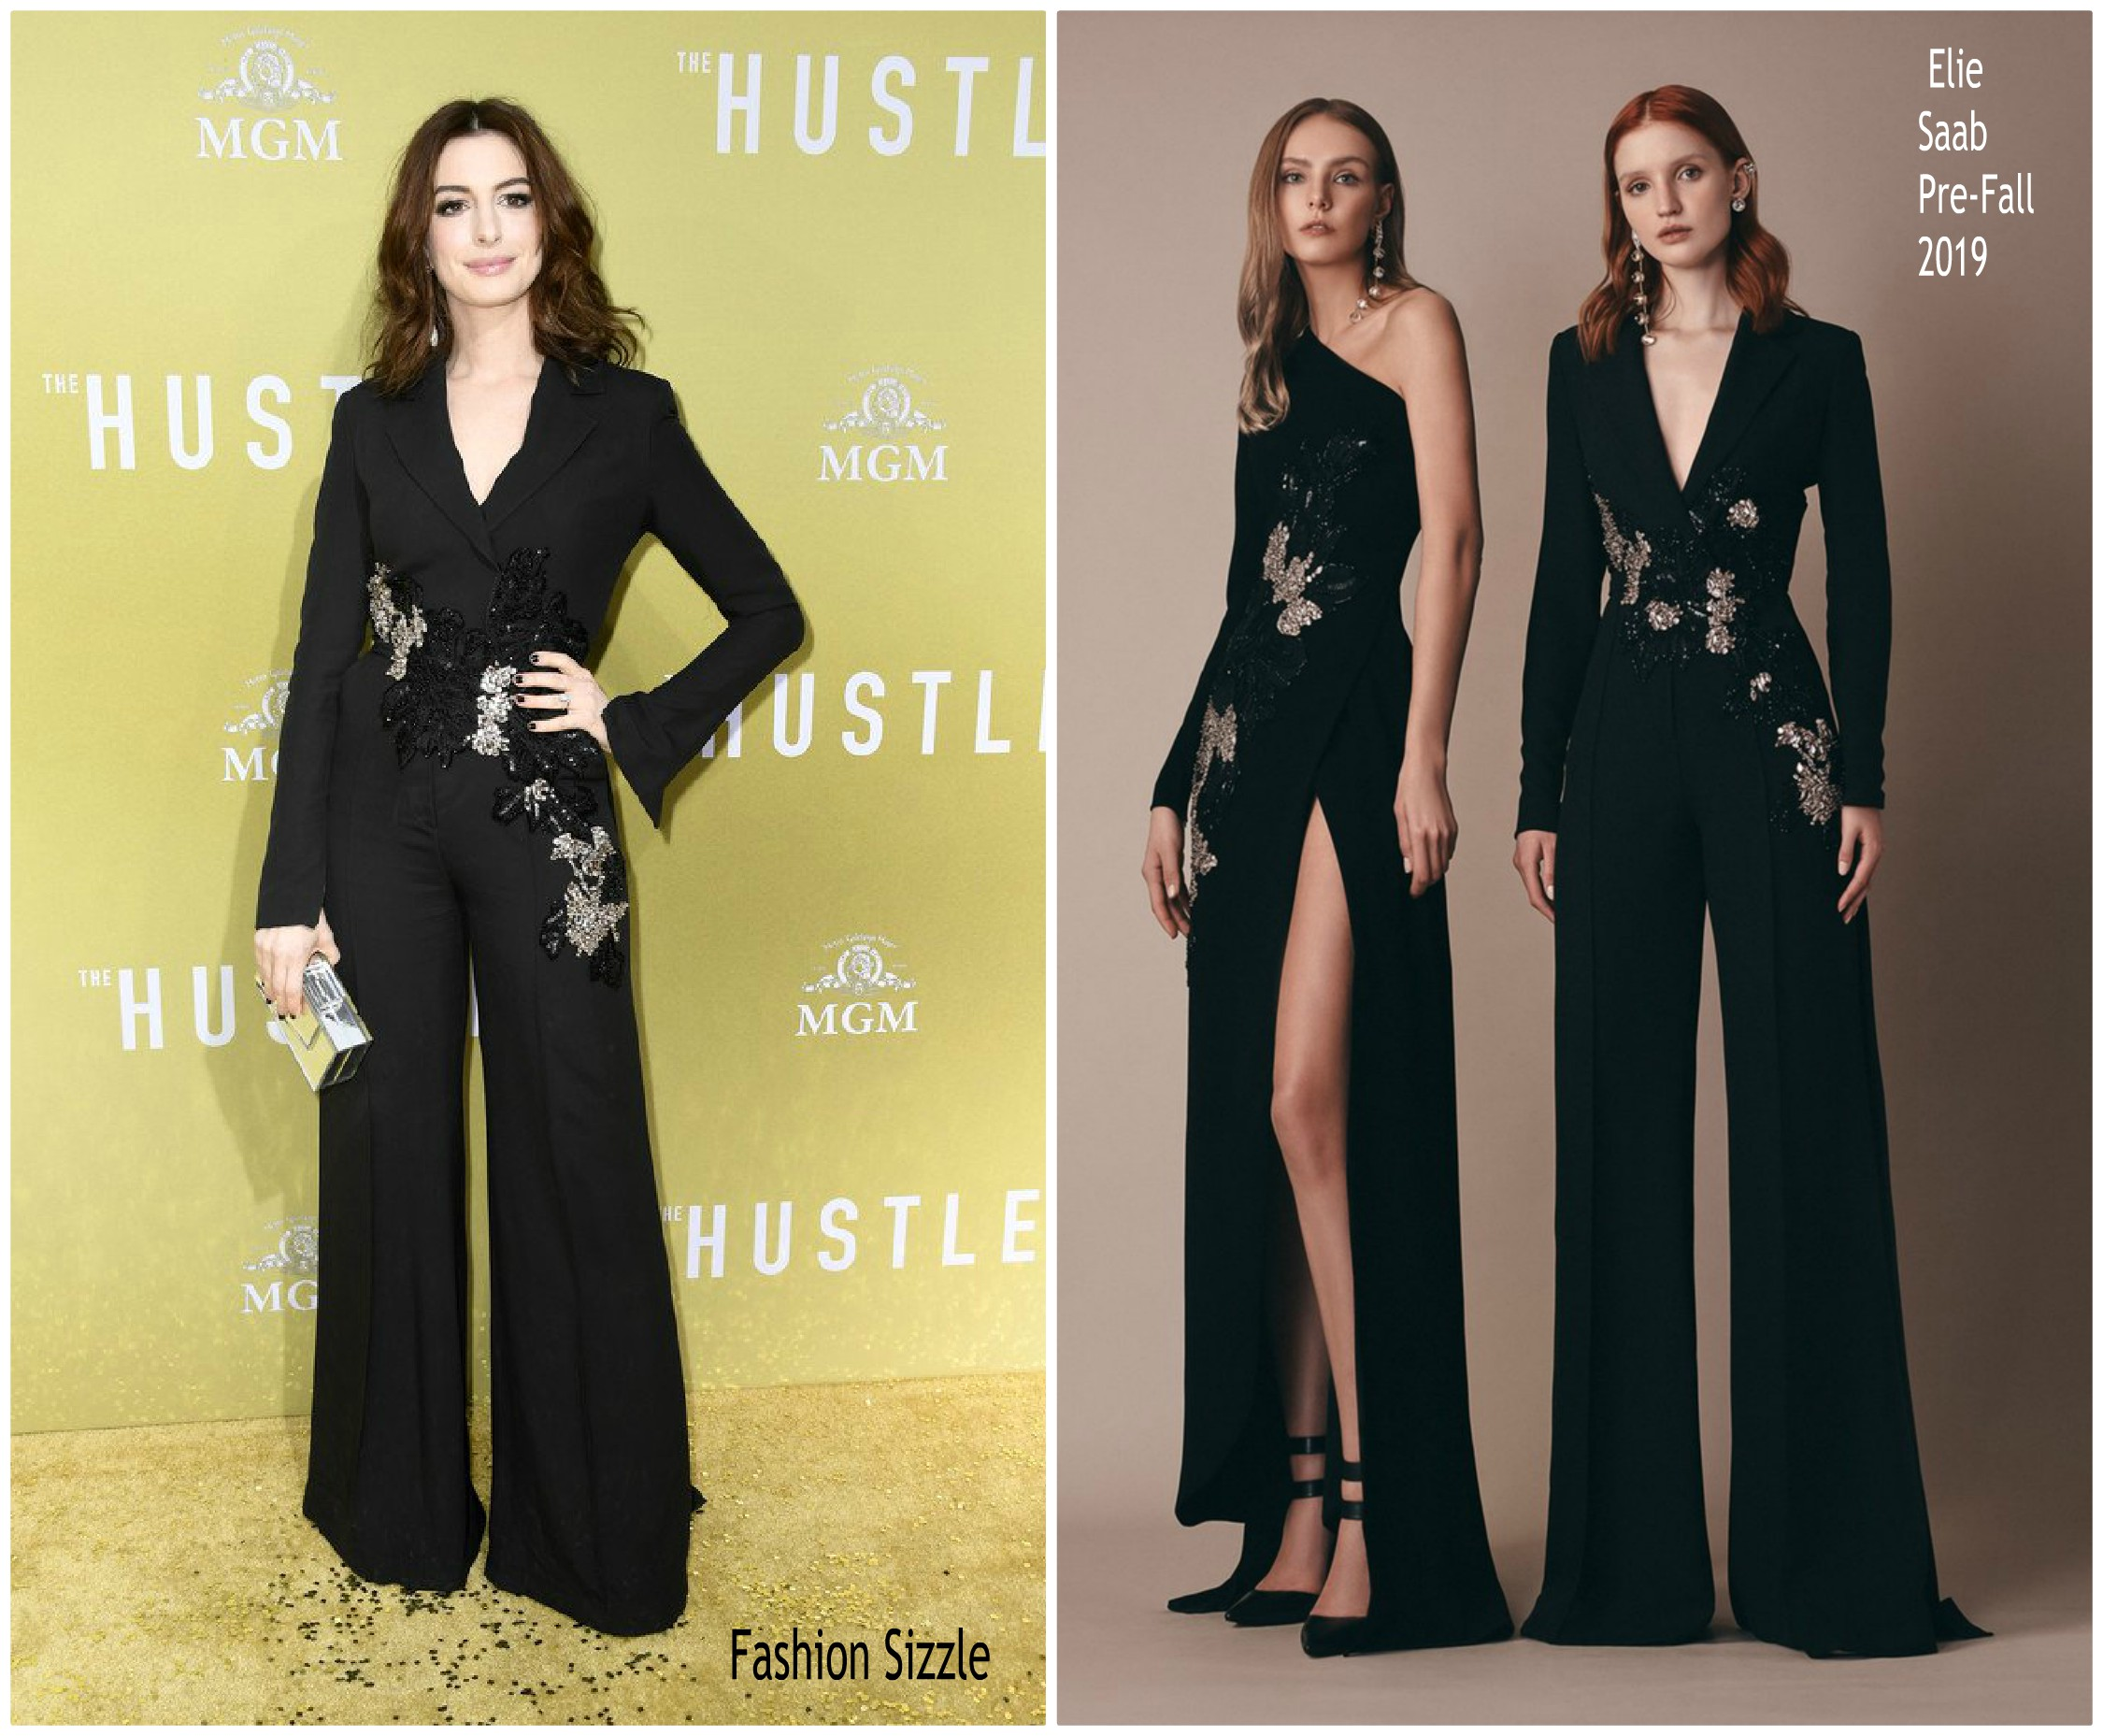 anne-hathaway-in-elie-saab-the-hustle-la-premiere